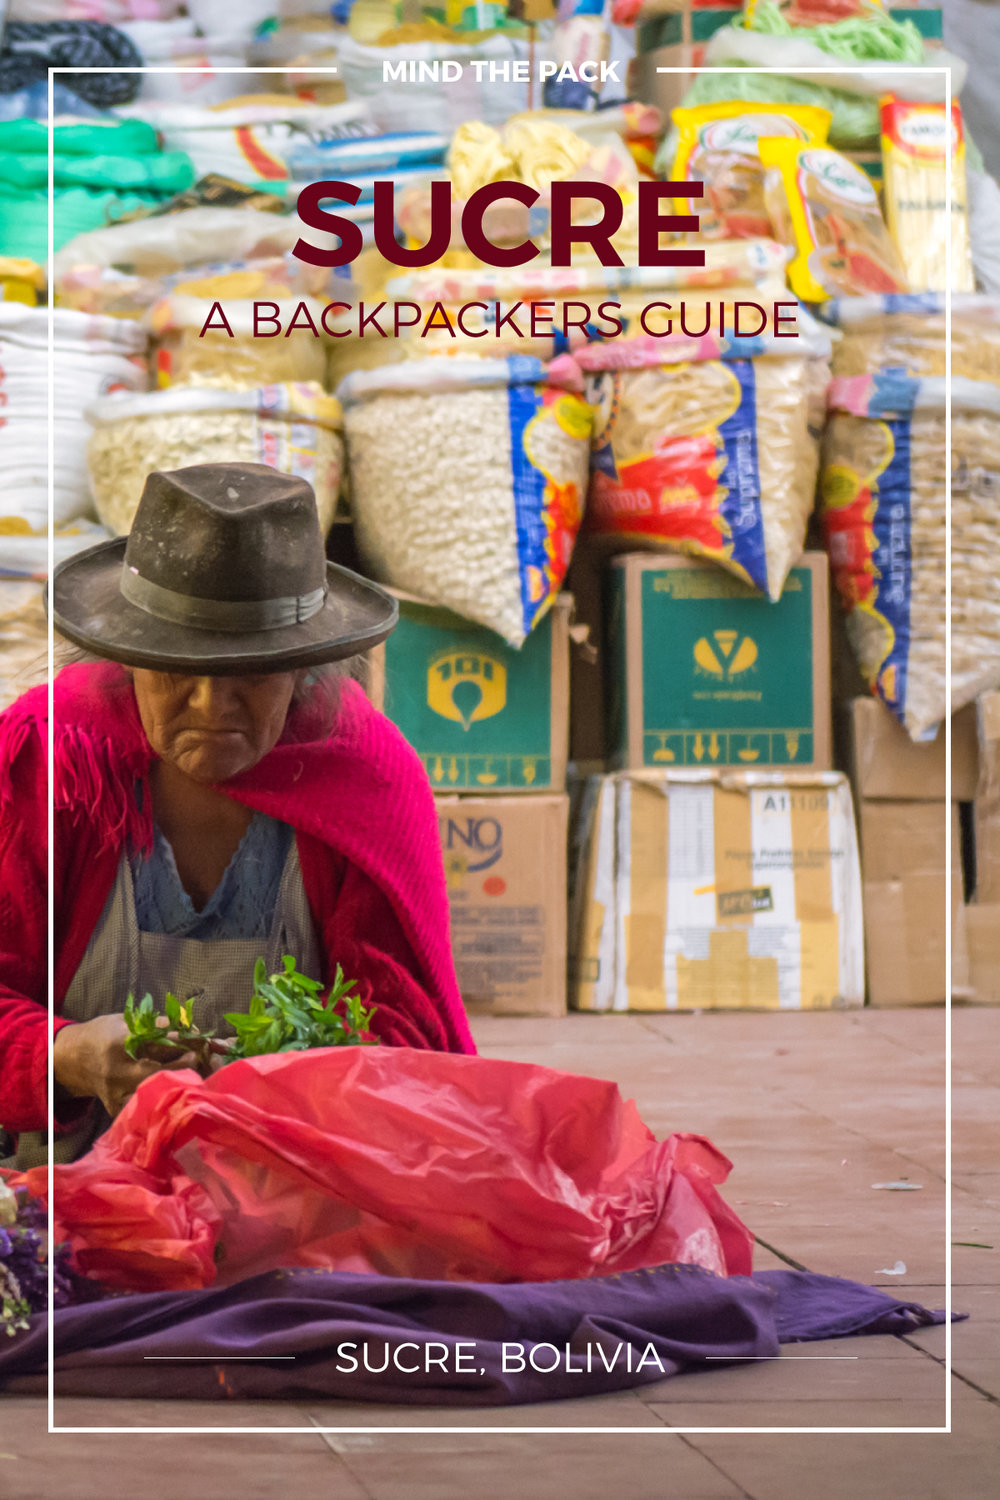 Sucre – A backpackers guide